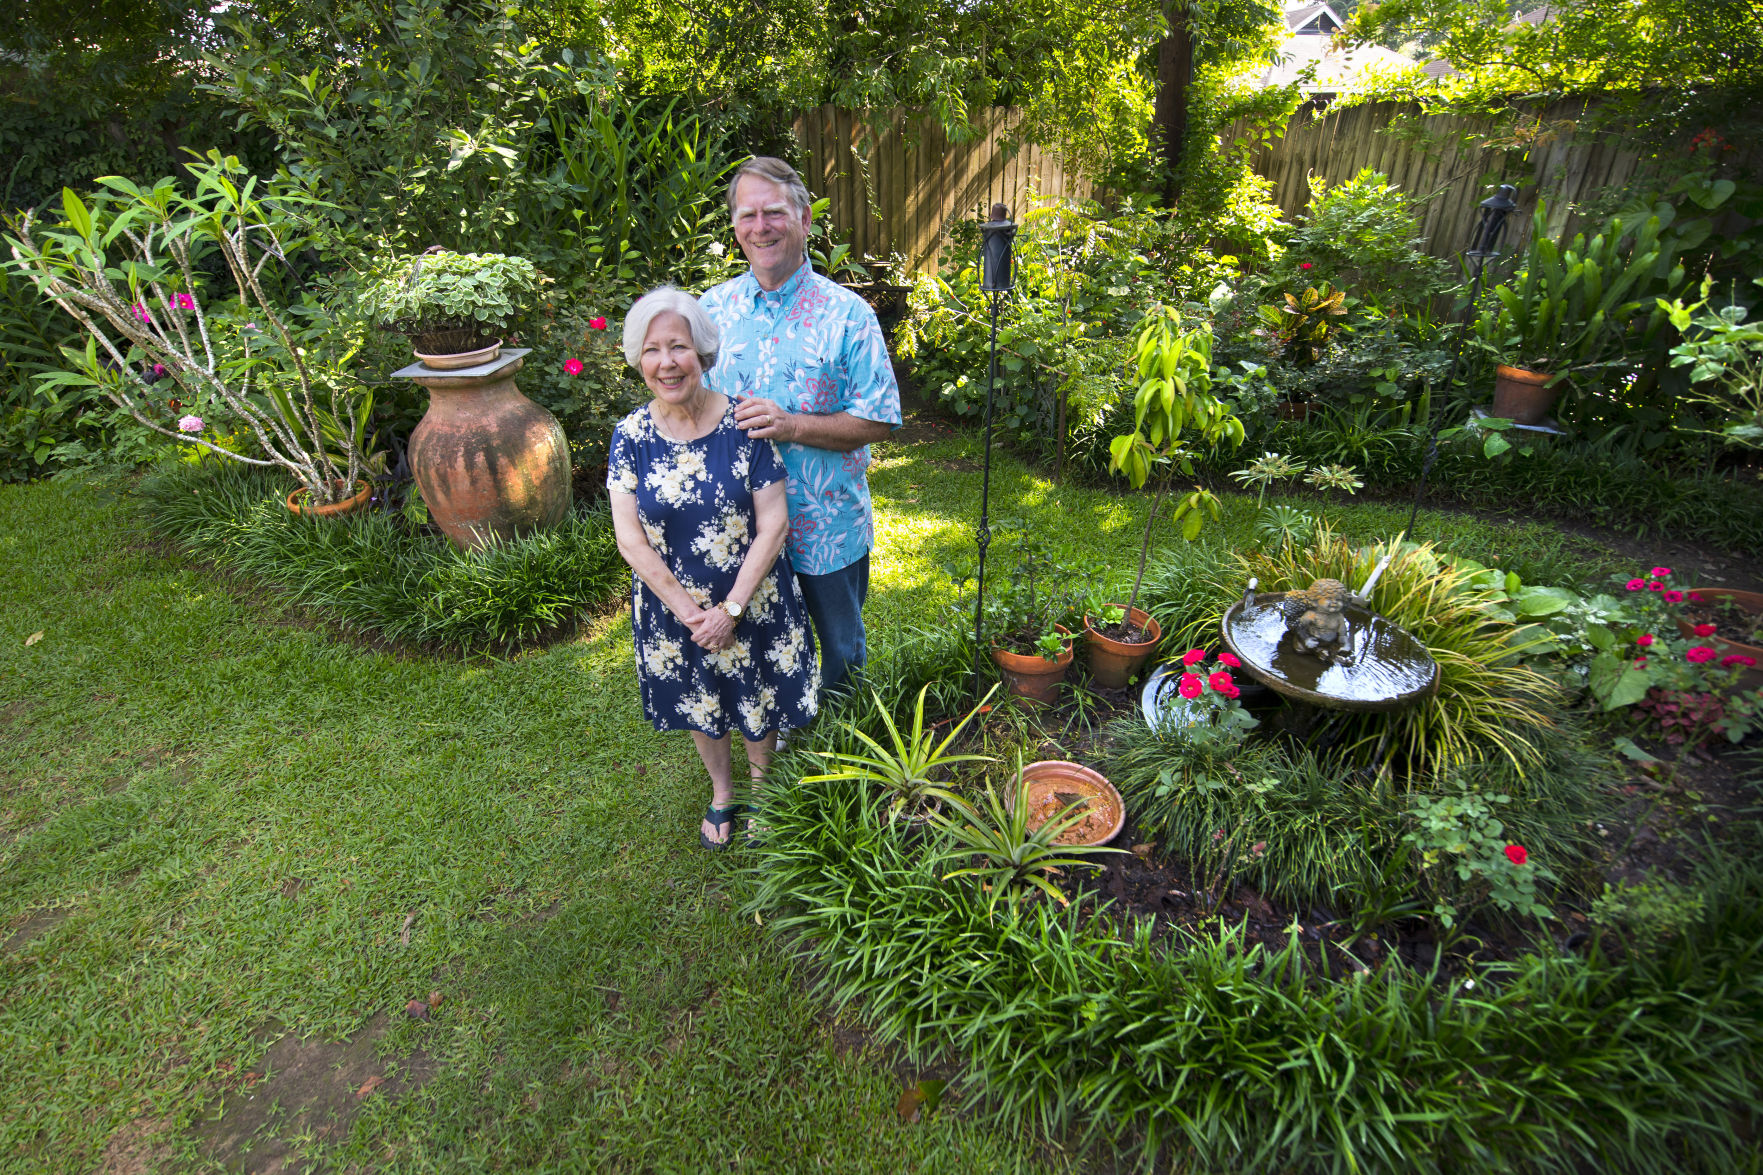 How Does Gary Anderson Grow His Baton Rouge Garden Big See Bounty Of Vegetables Plants More Home Garden Theadvocate Com